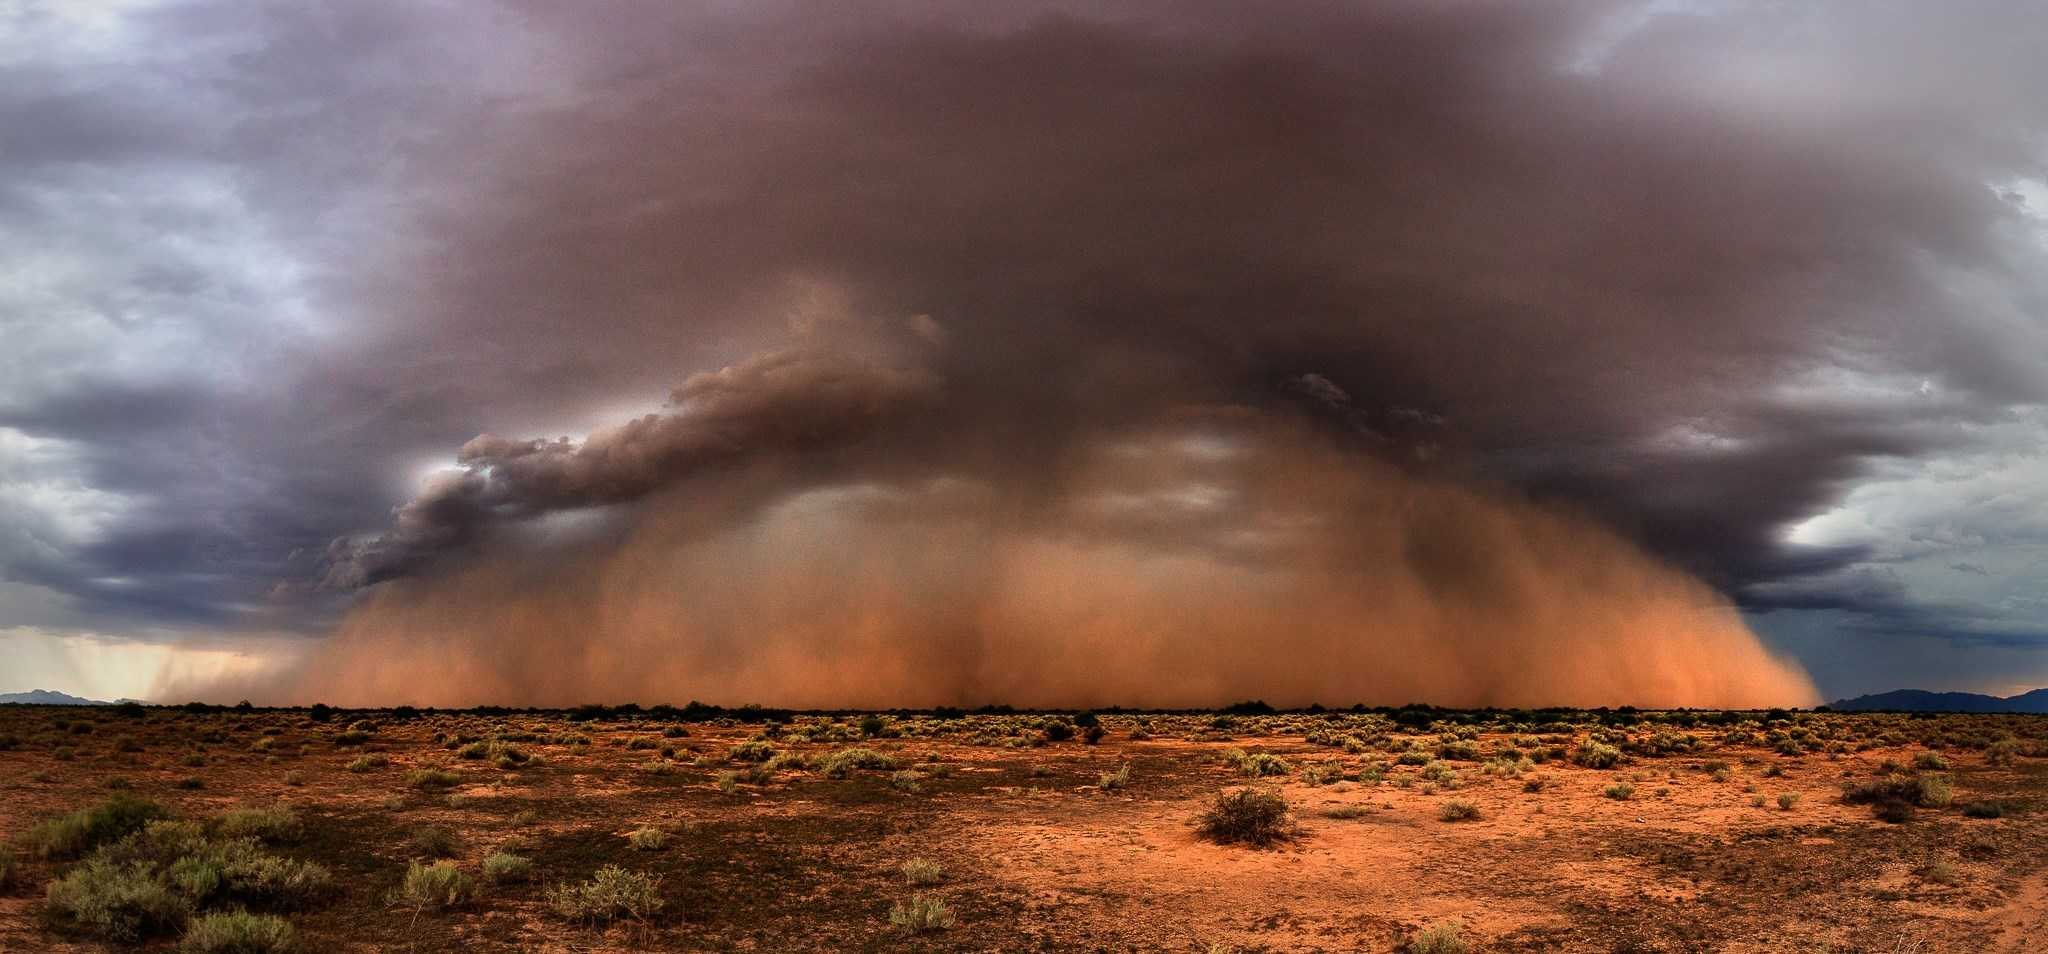 A beautiful haboob yesterday south of Phoenix! Been waiting for a photogenic one all summer, finally happened